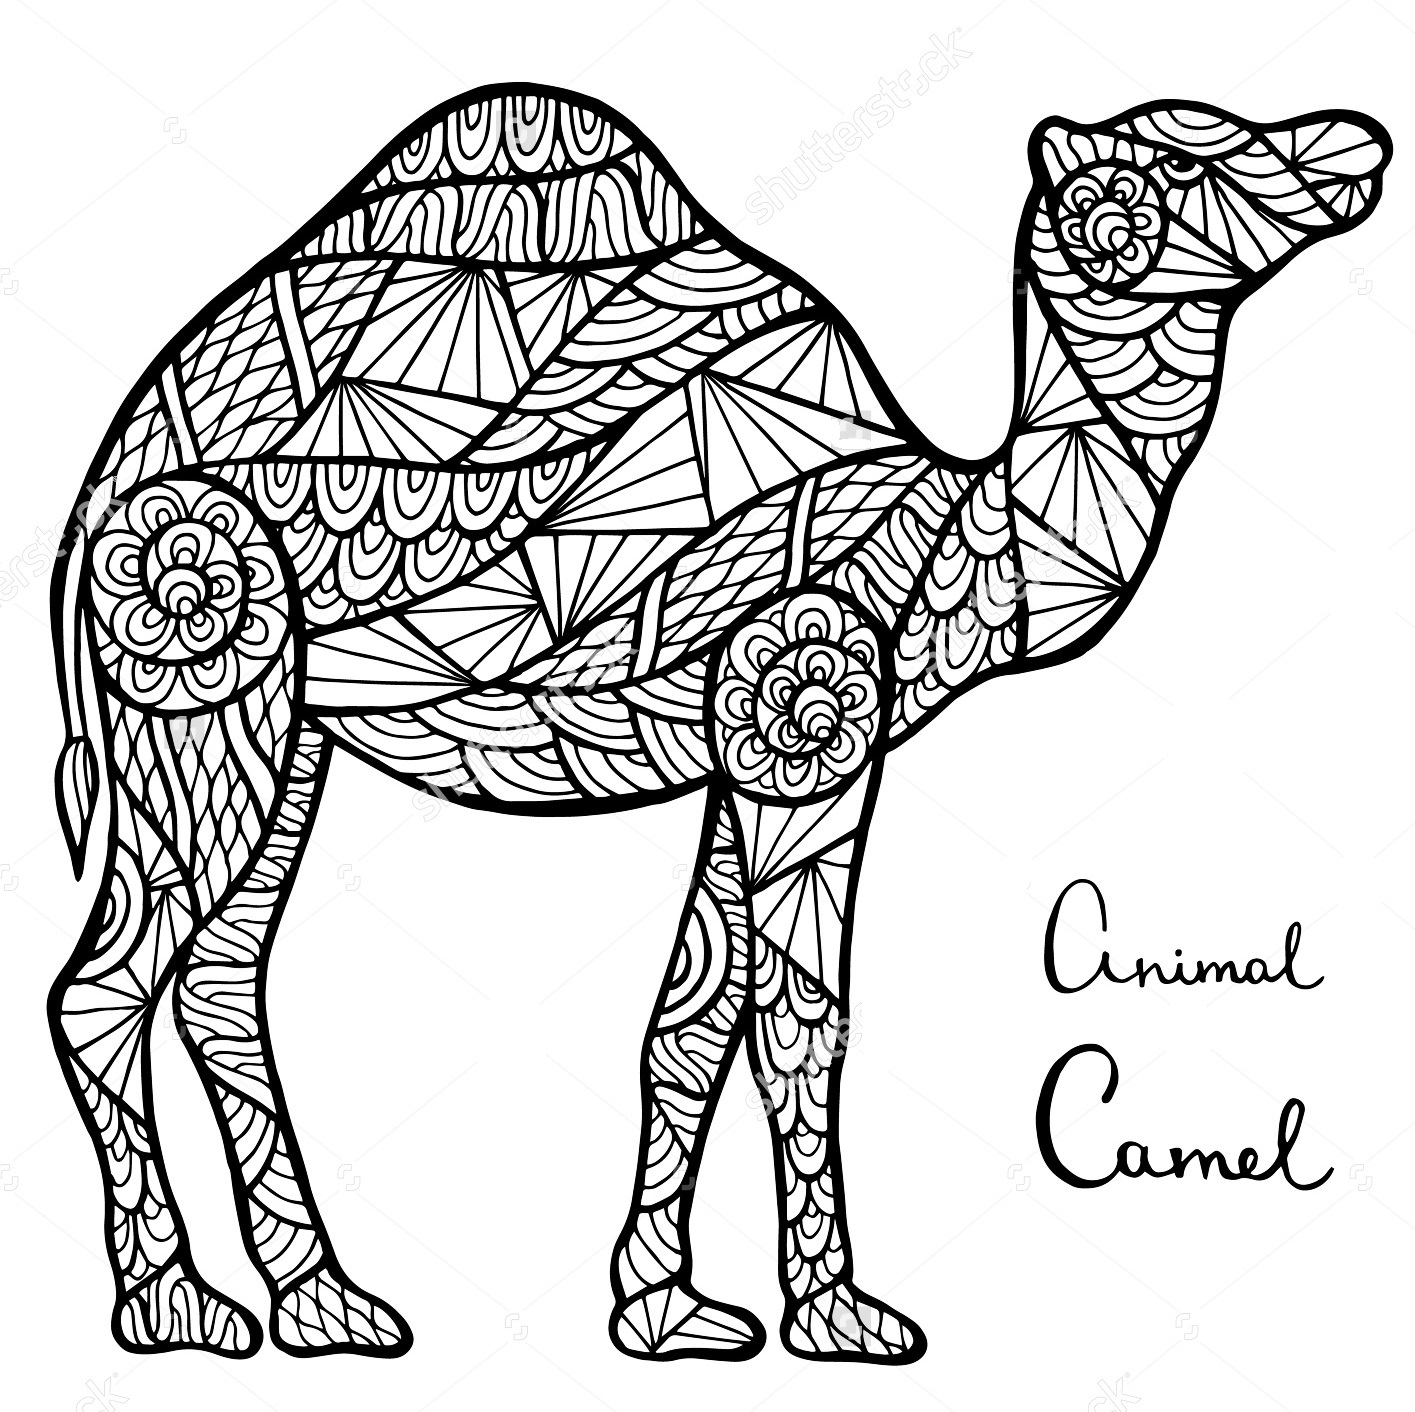 camel-zentangle-coloring-page